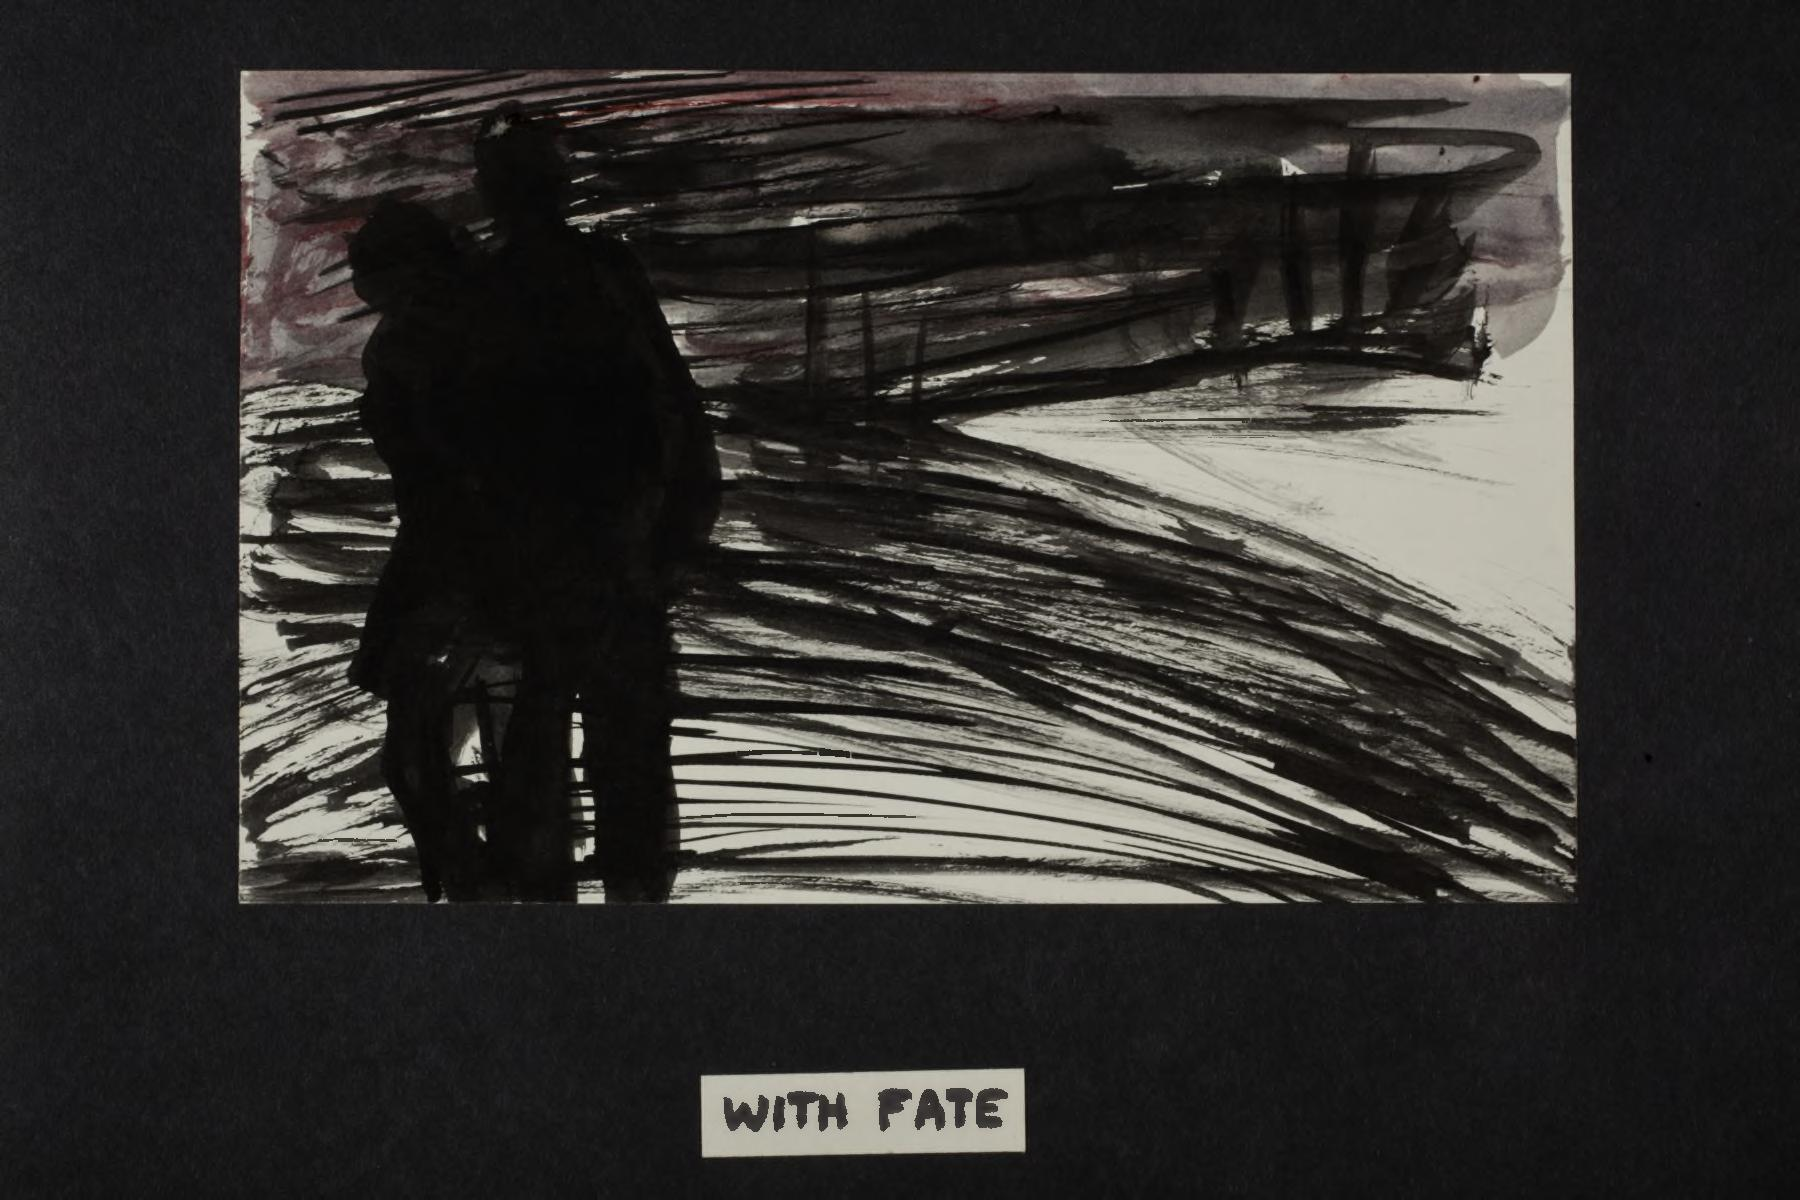 With Fate